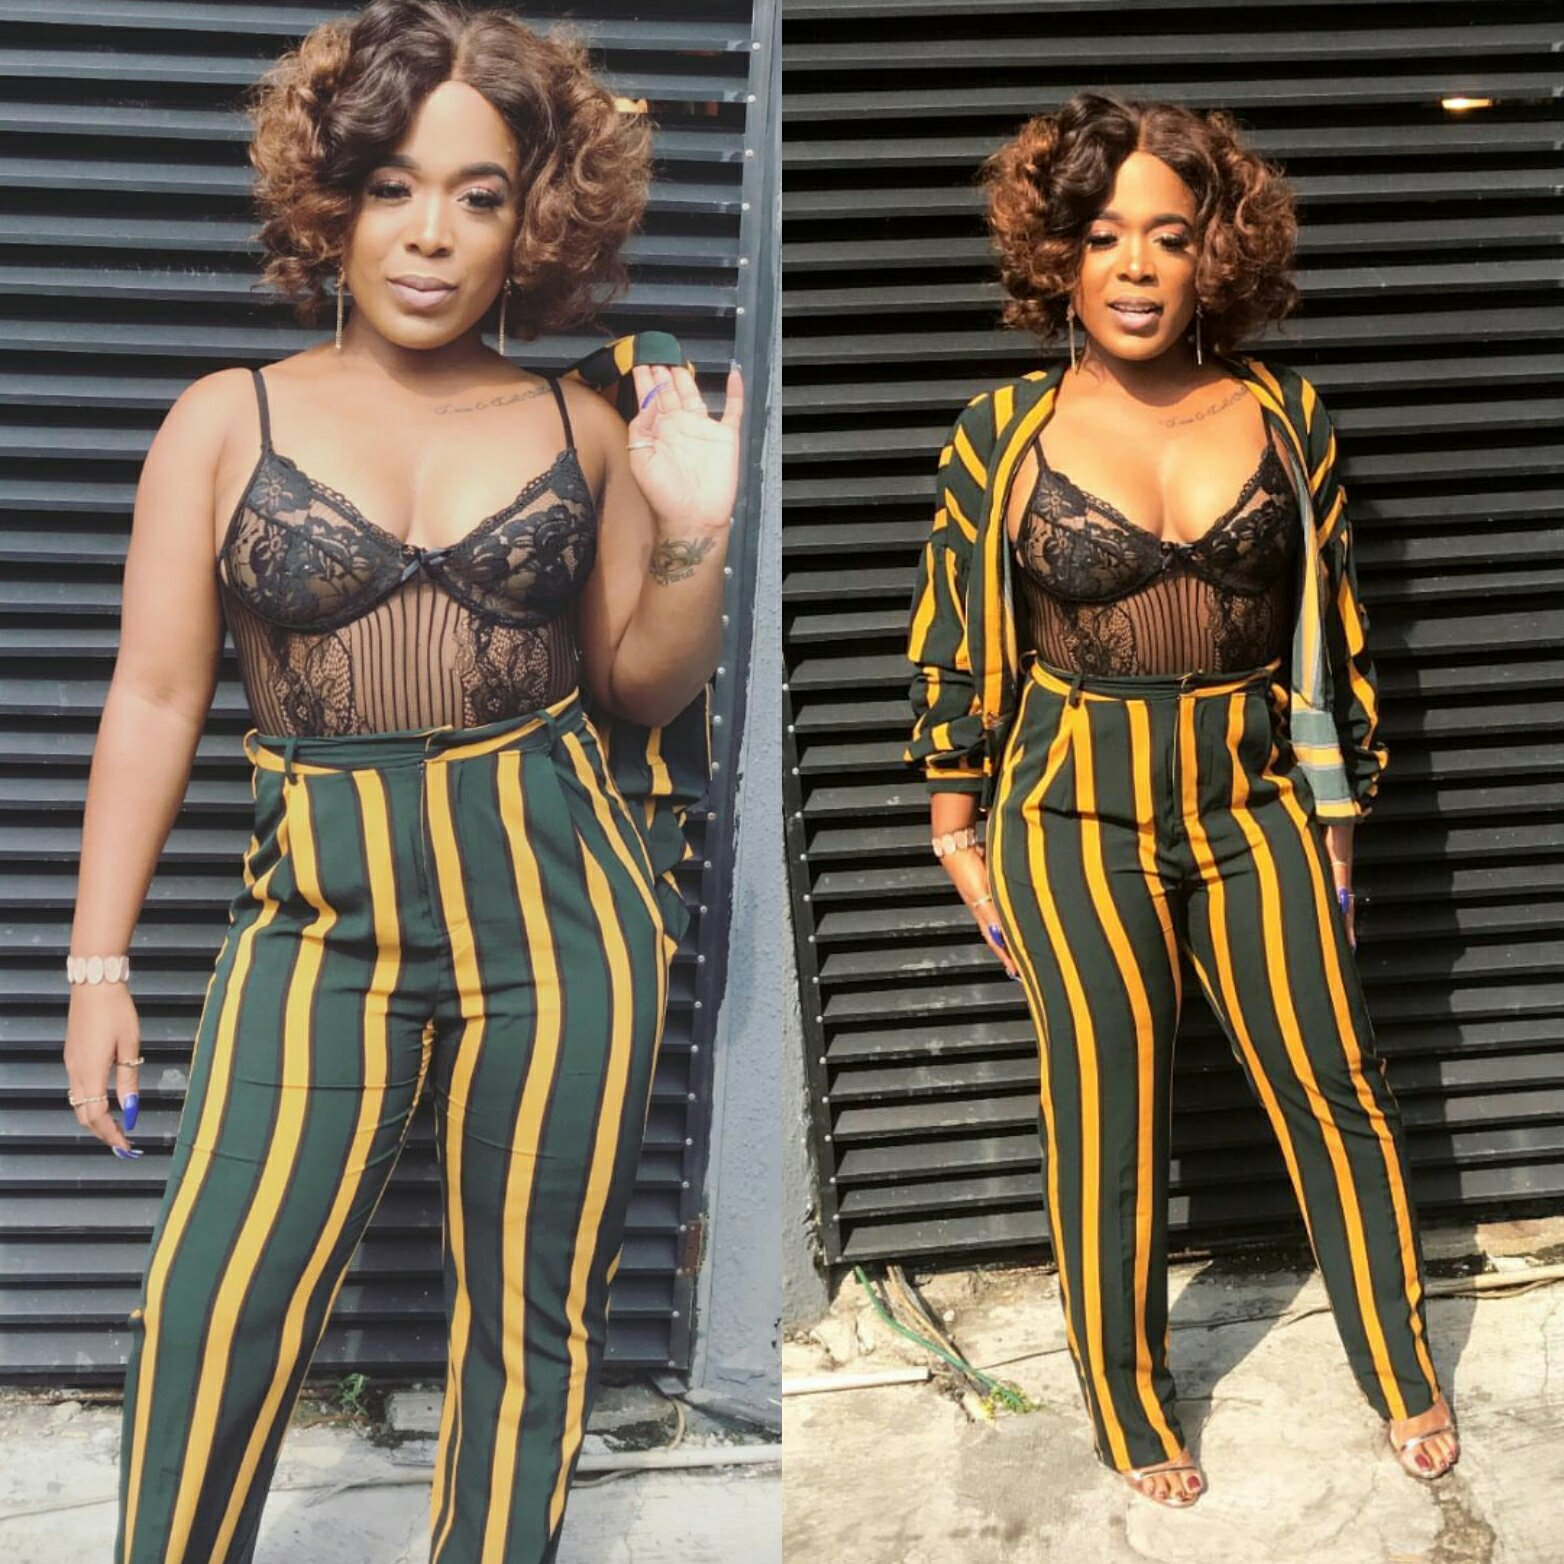 Moet Abebe Flashes B0obs In Sheer Bustier